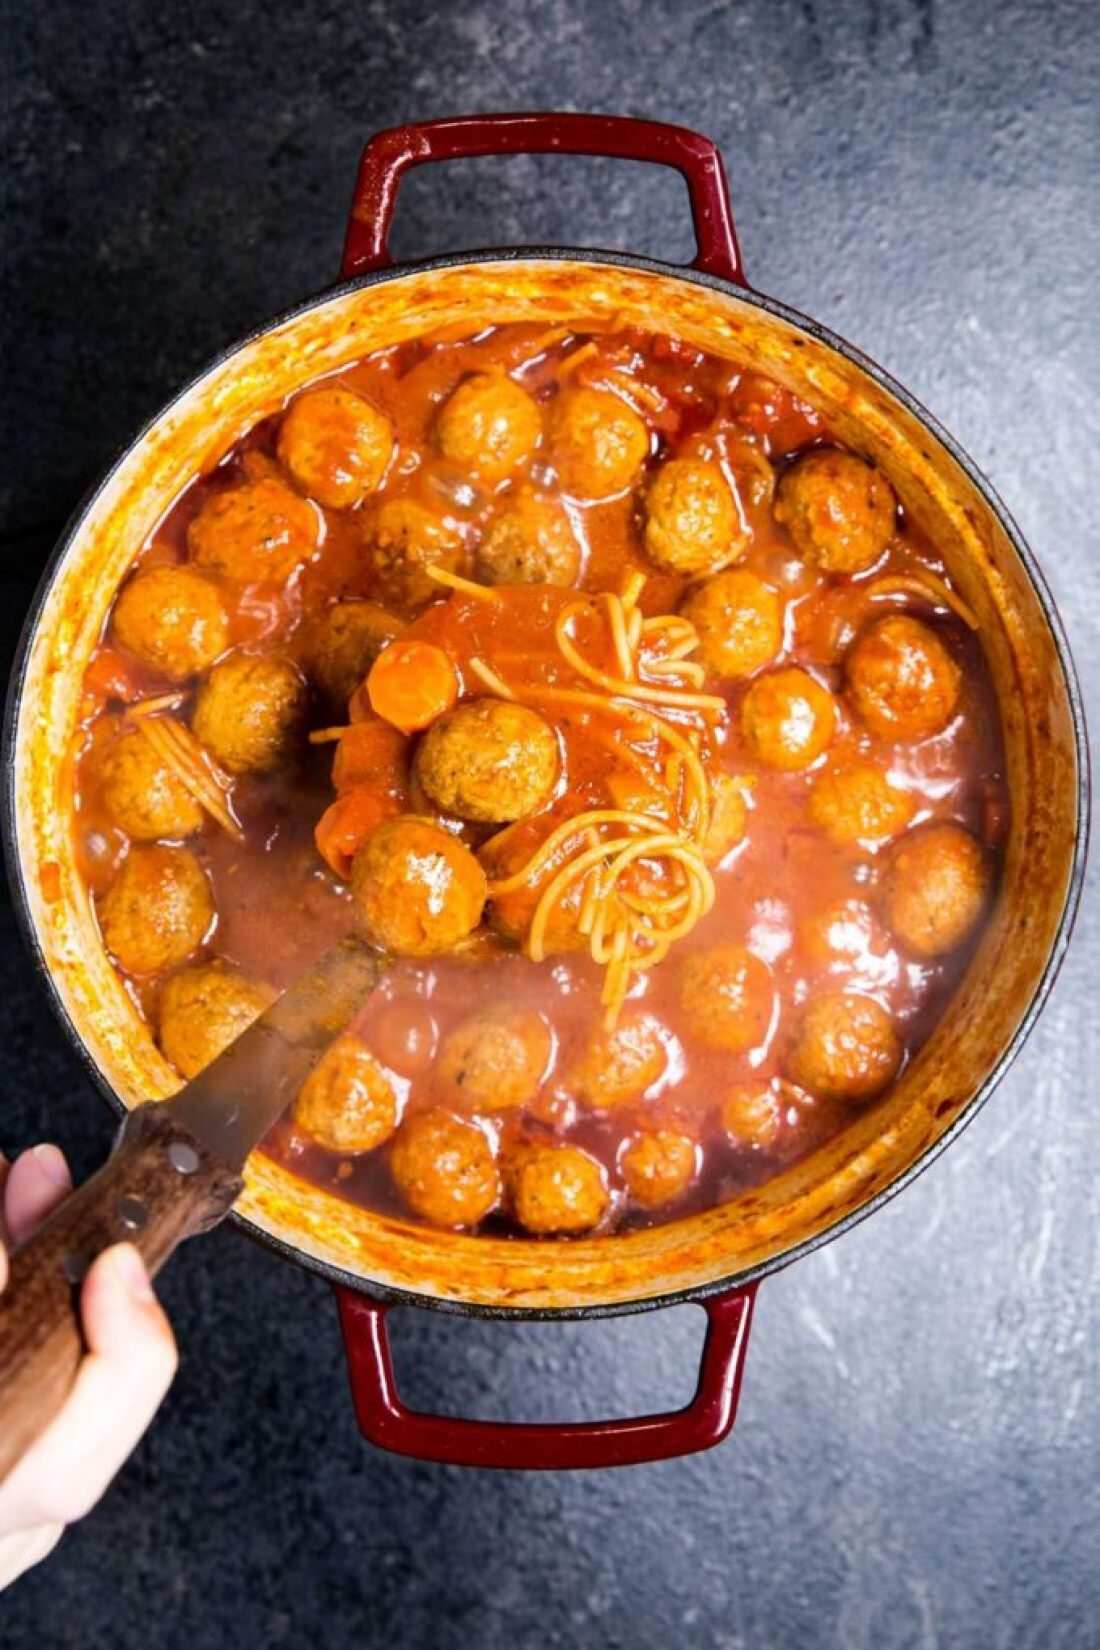 Meatball soup, Italian Meatball Soup is a classic soup recipe with delicious meatballs, veggies, and noodle in a tomato based broth.